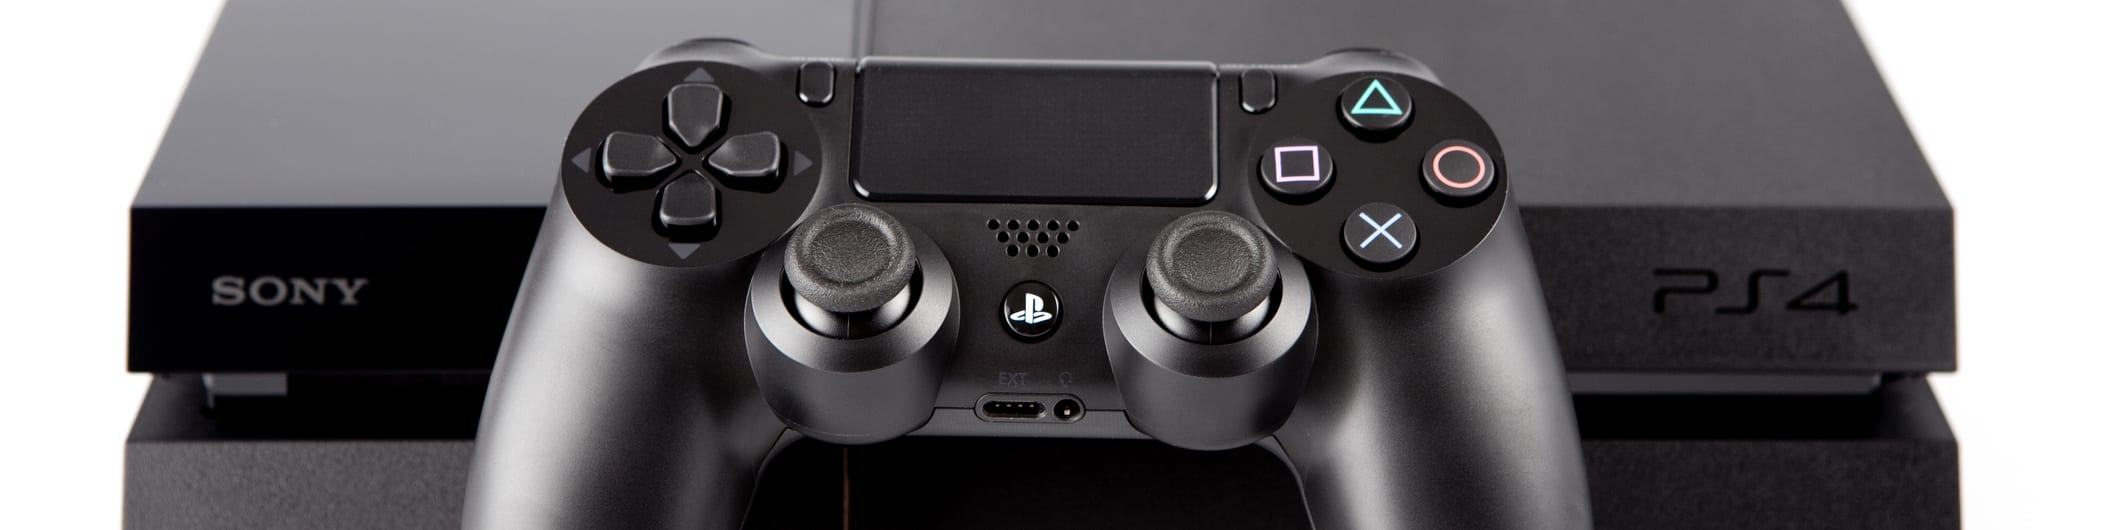 PlayStation controller and console